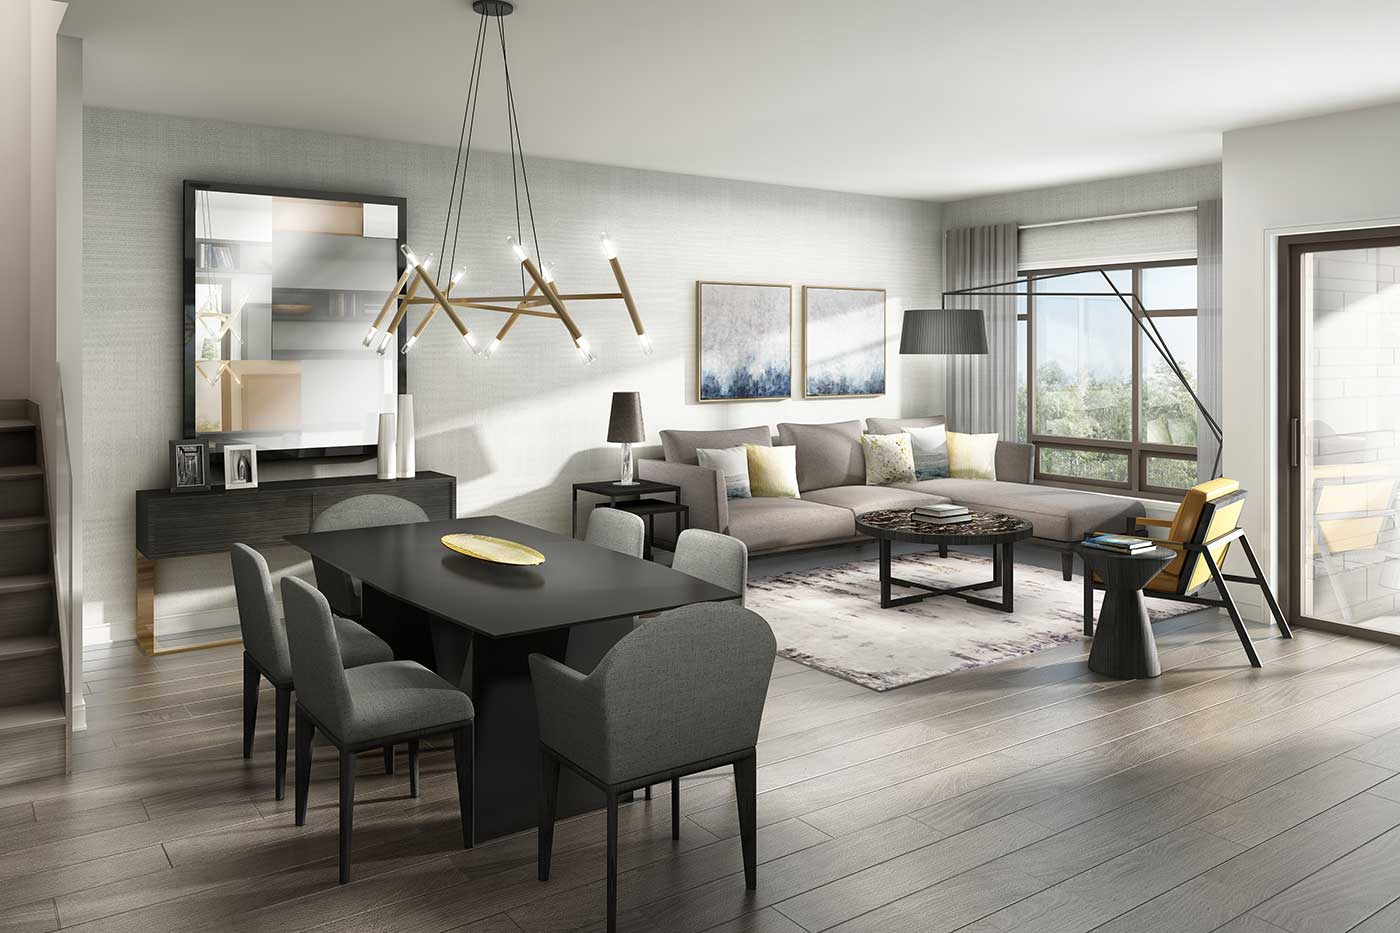 burlington-townhomes-station-west-condos-london-collection-living-room.jpg